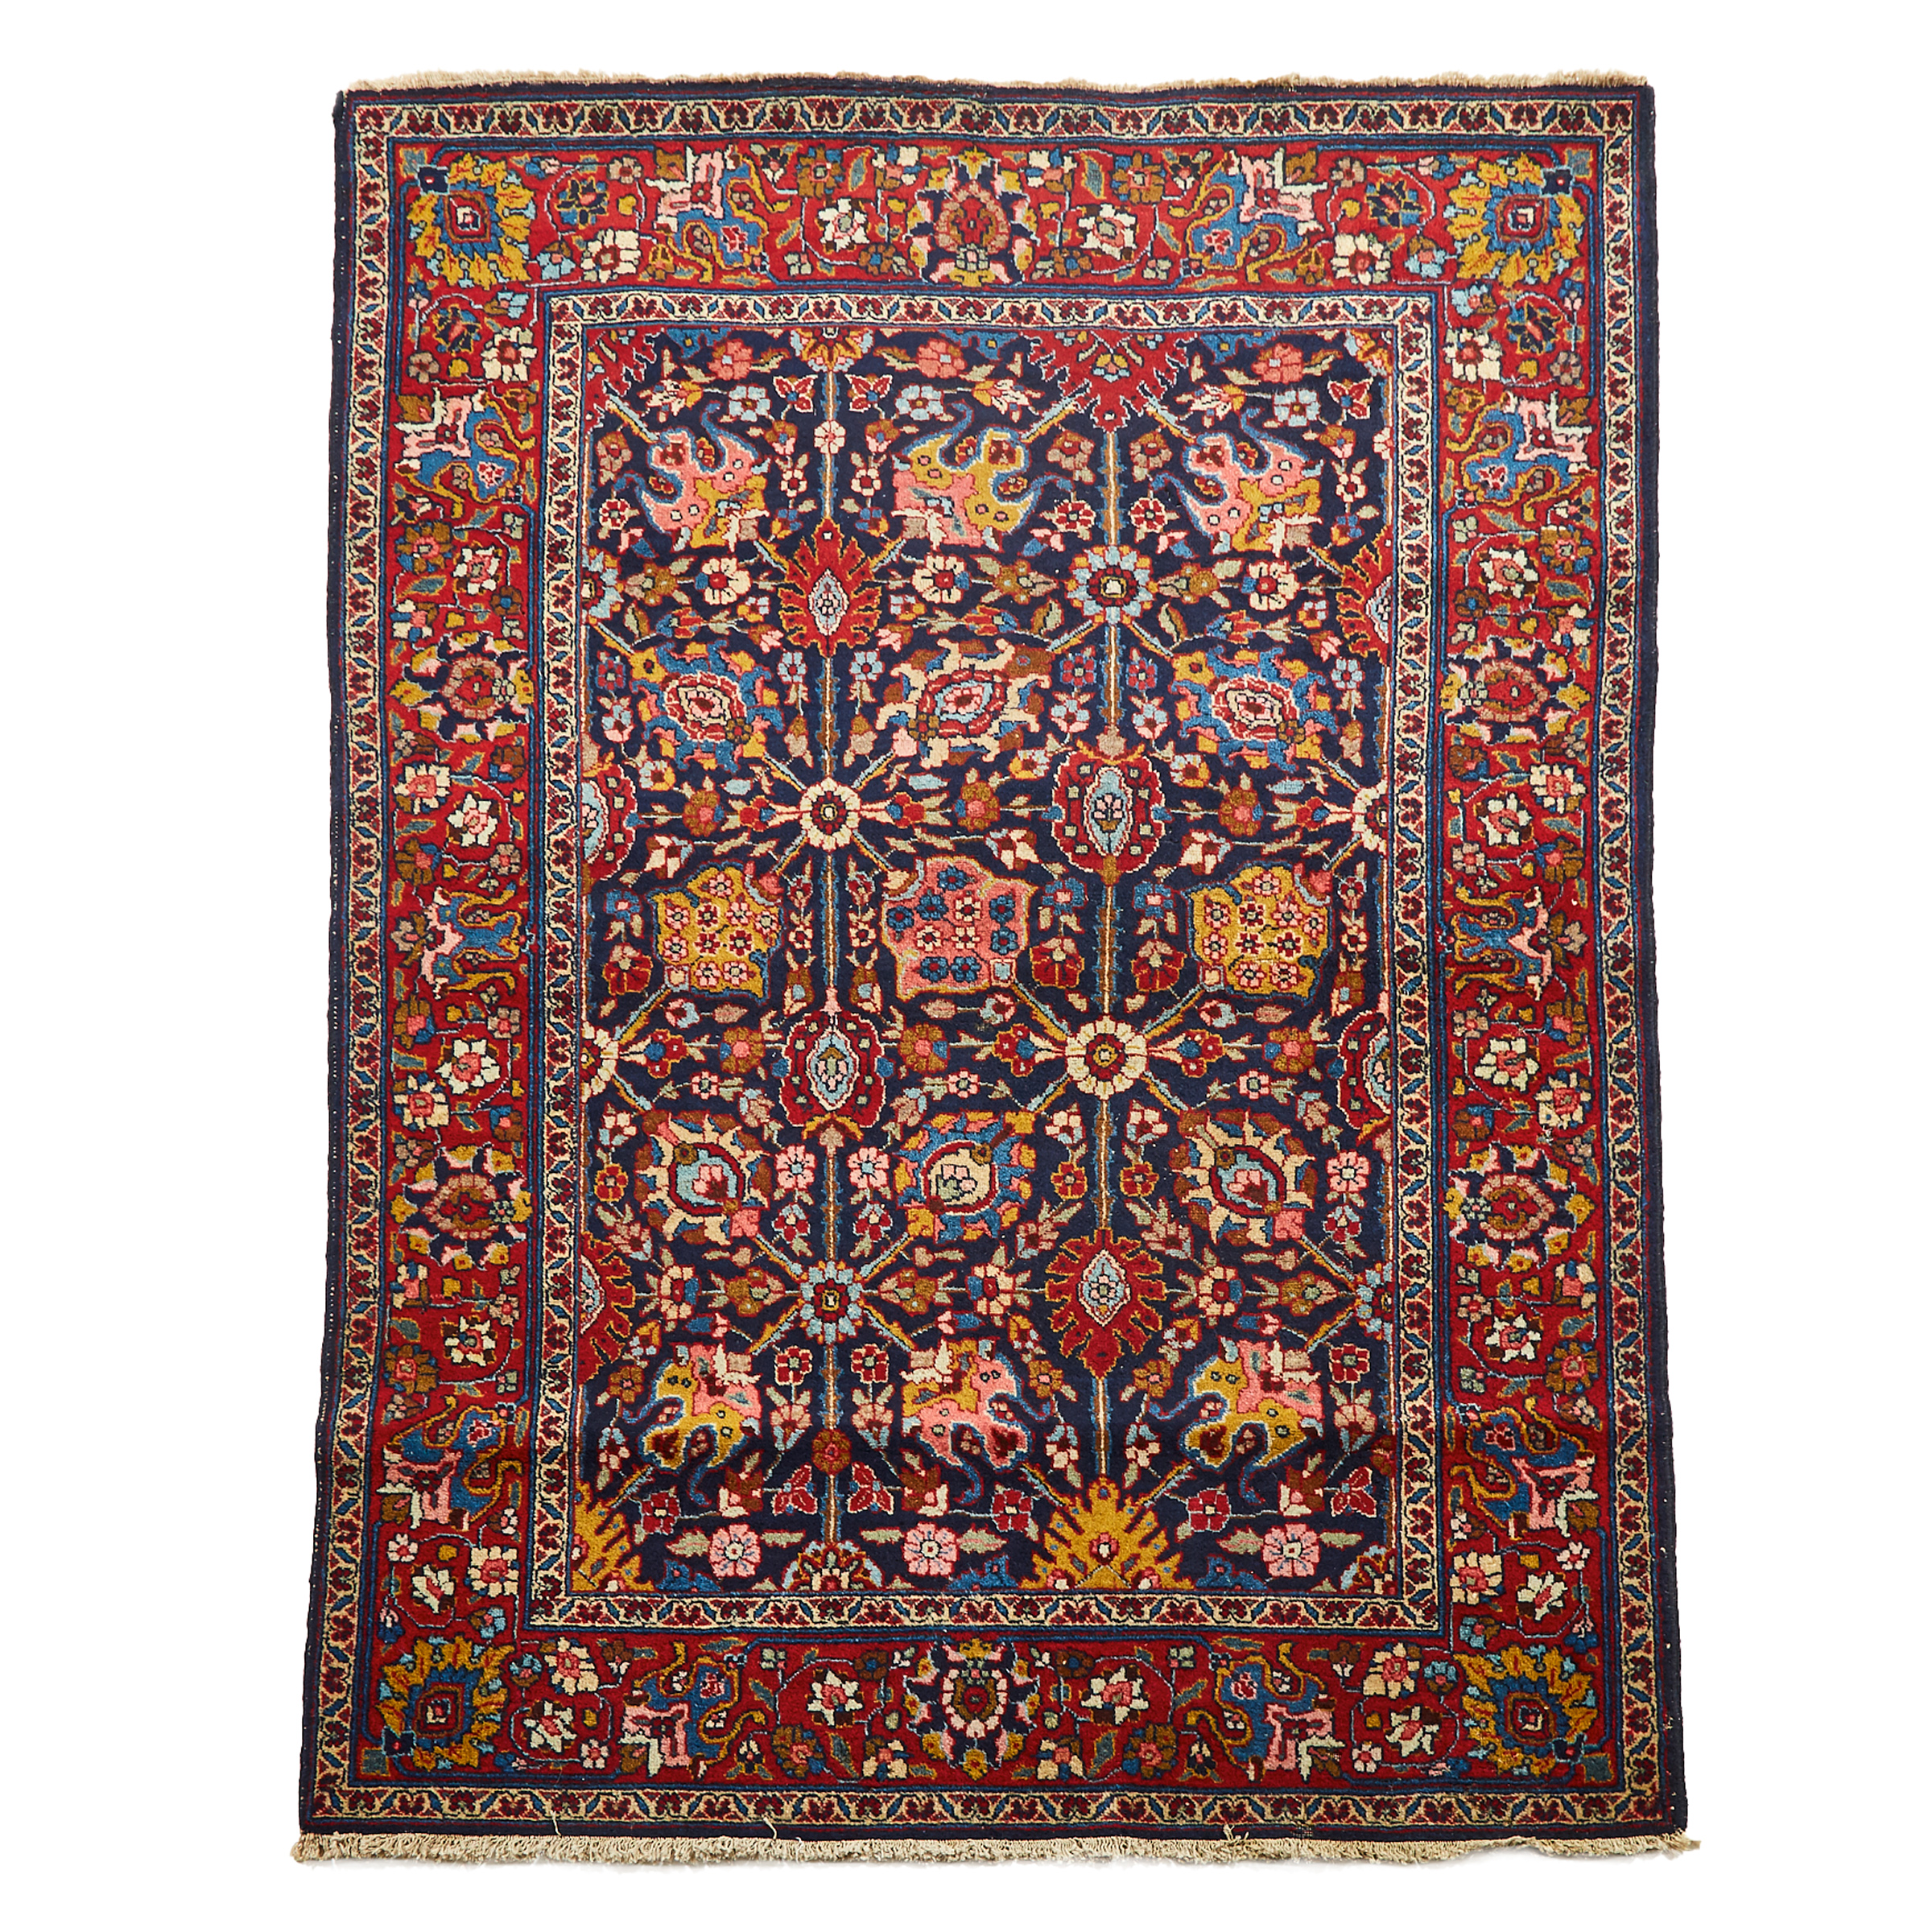 North Persian Rug, mid 20th century